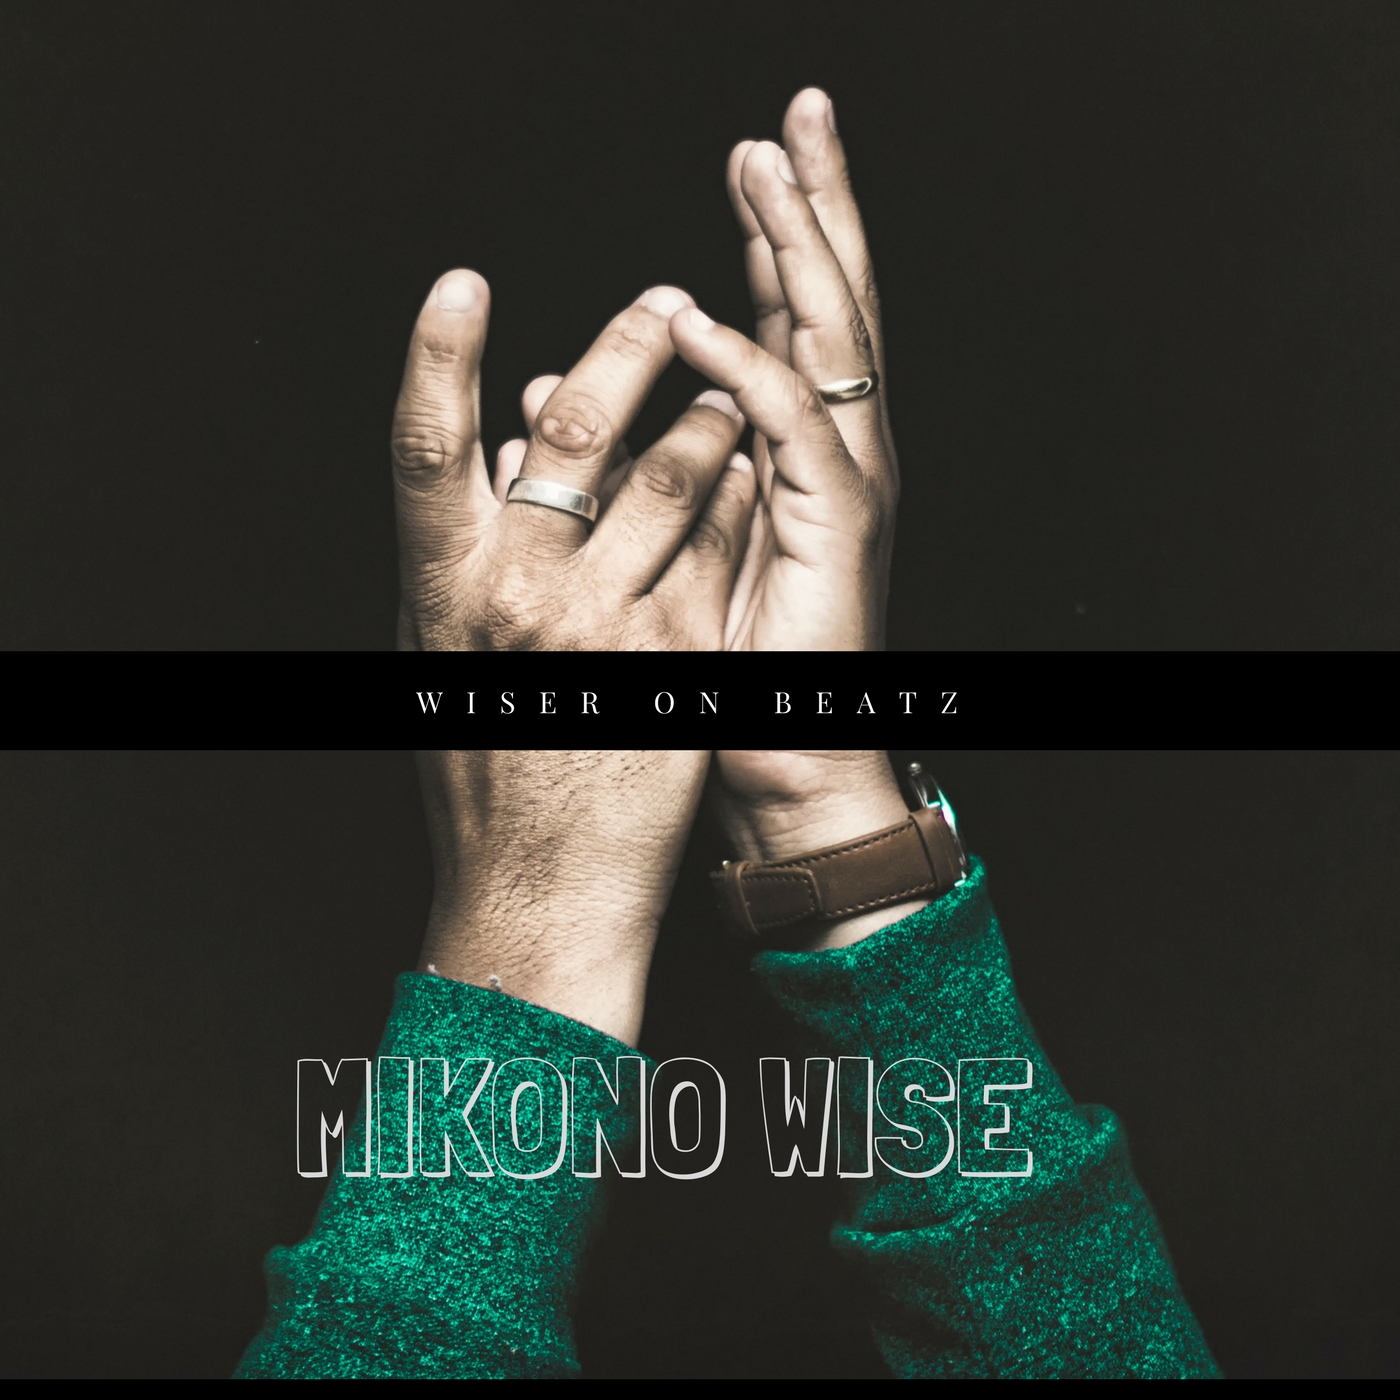 Wiser on beatz - 02. RAGA TWINT